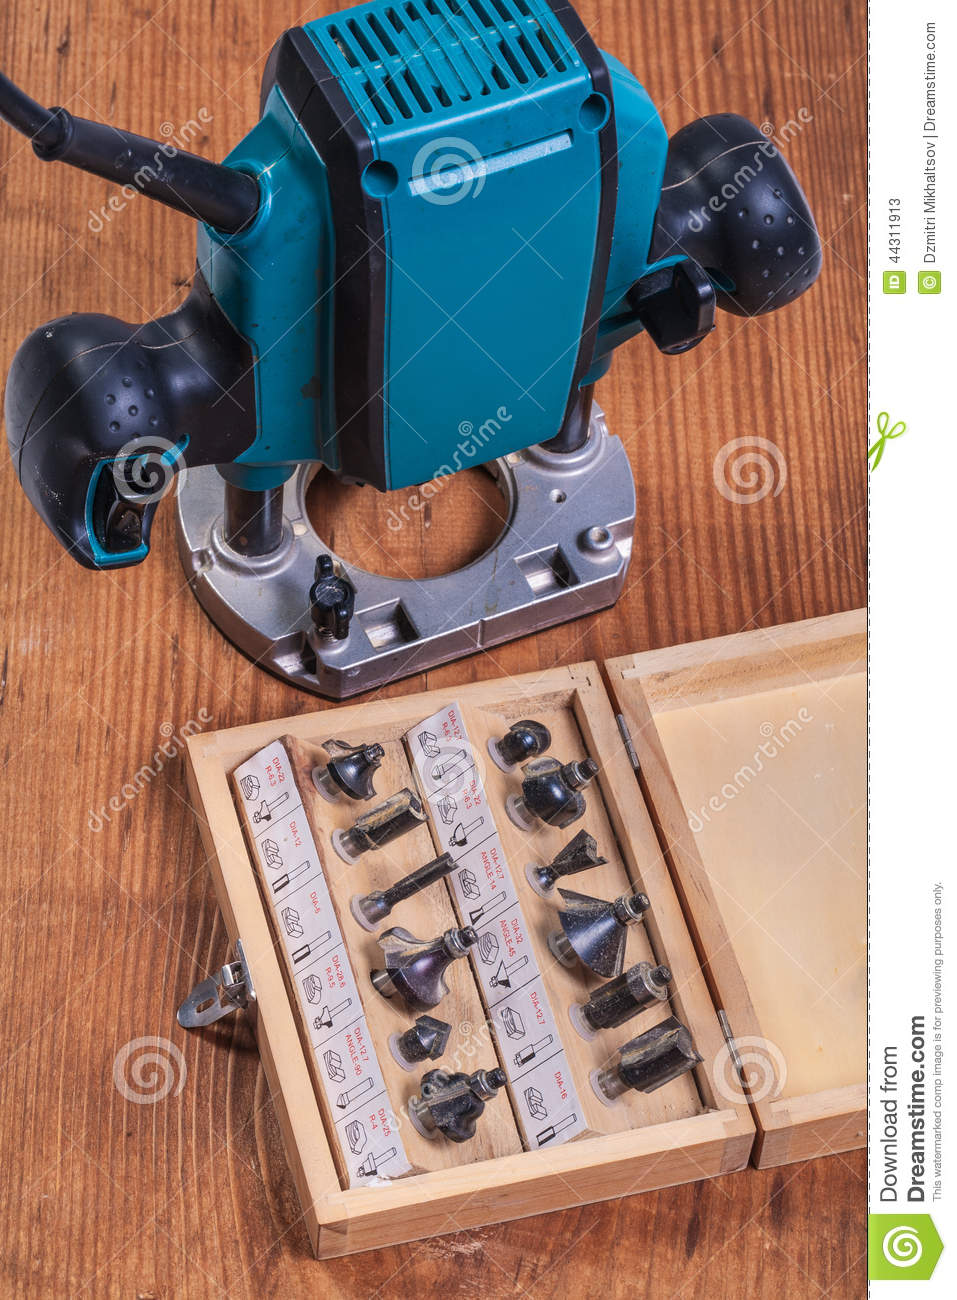 woodworking tools set of roundover router bits in box and plun stock image image of milling. Black Bedroom Furniture Sets. Home Design Ideas